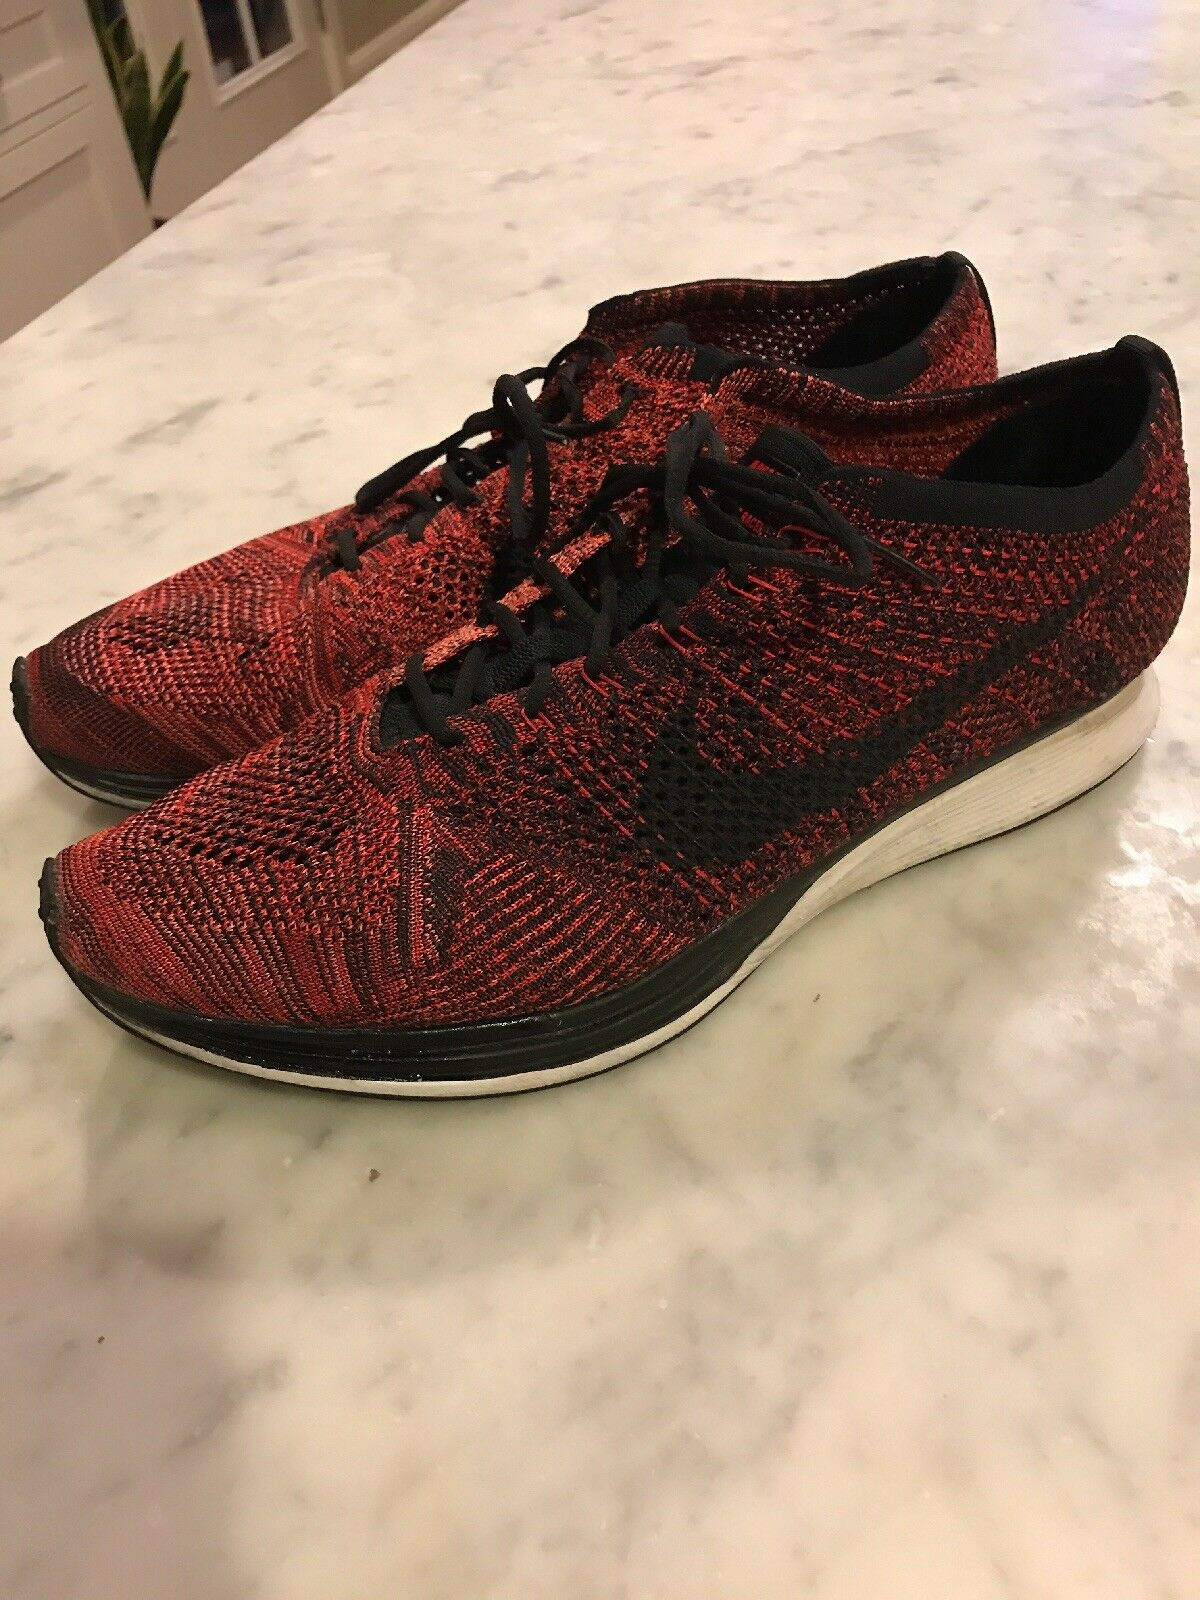 Nike Flyknit Racer Size 15 Tooster Red 526628-608